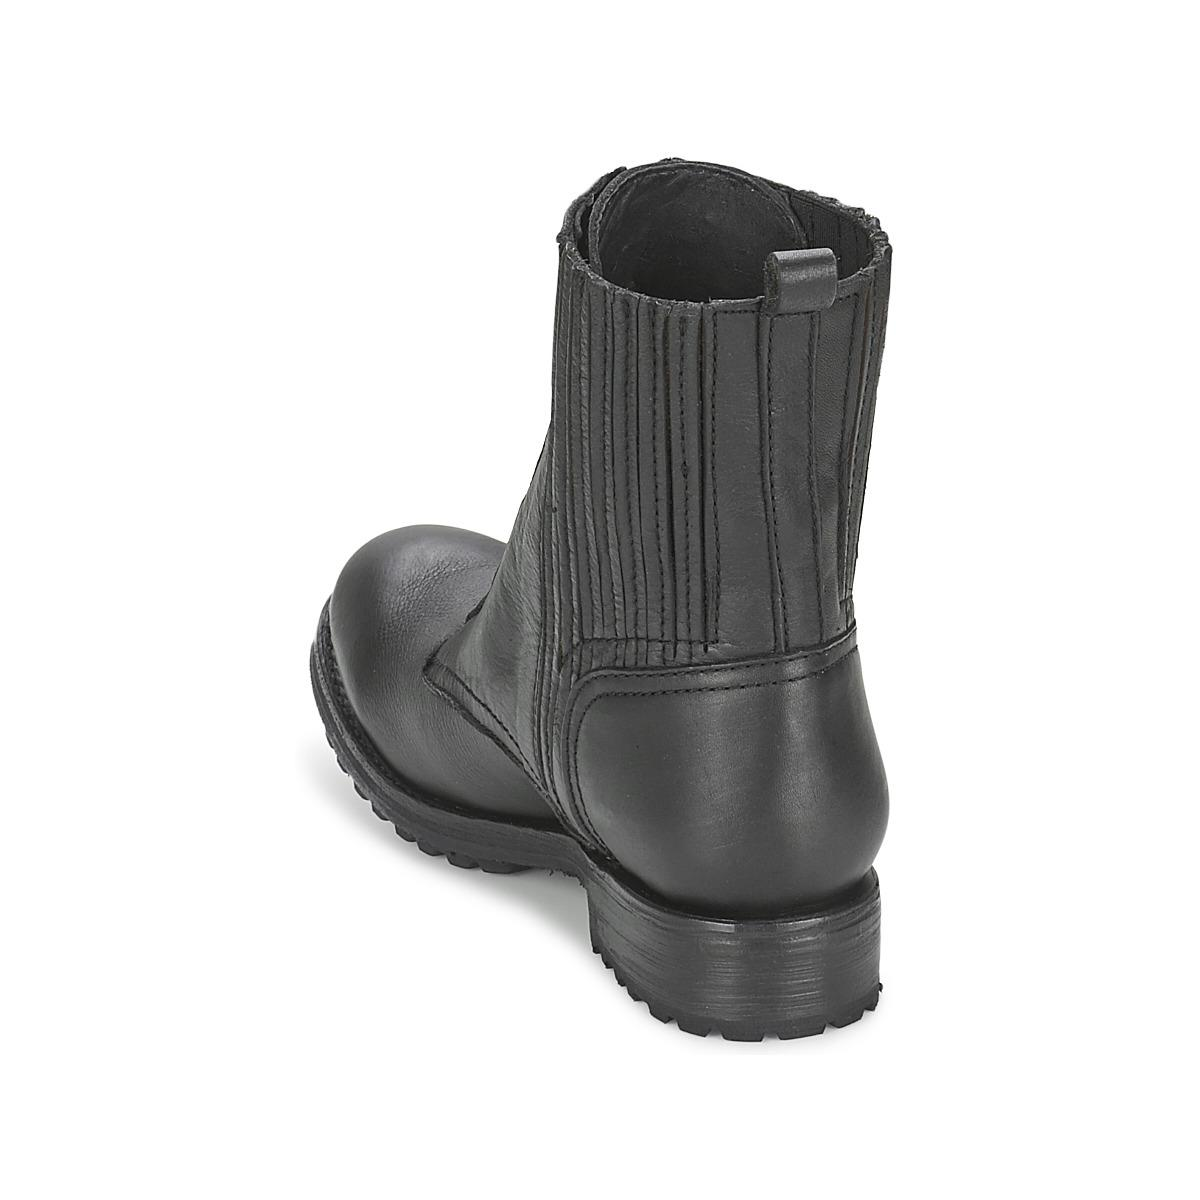 Ash Rachel Mid Boots in Black - Save 12%